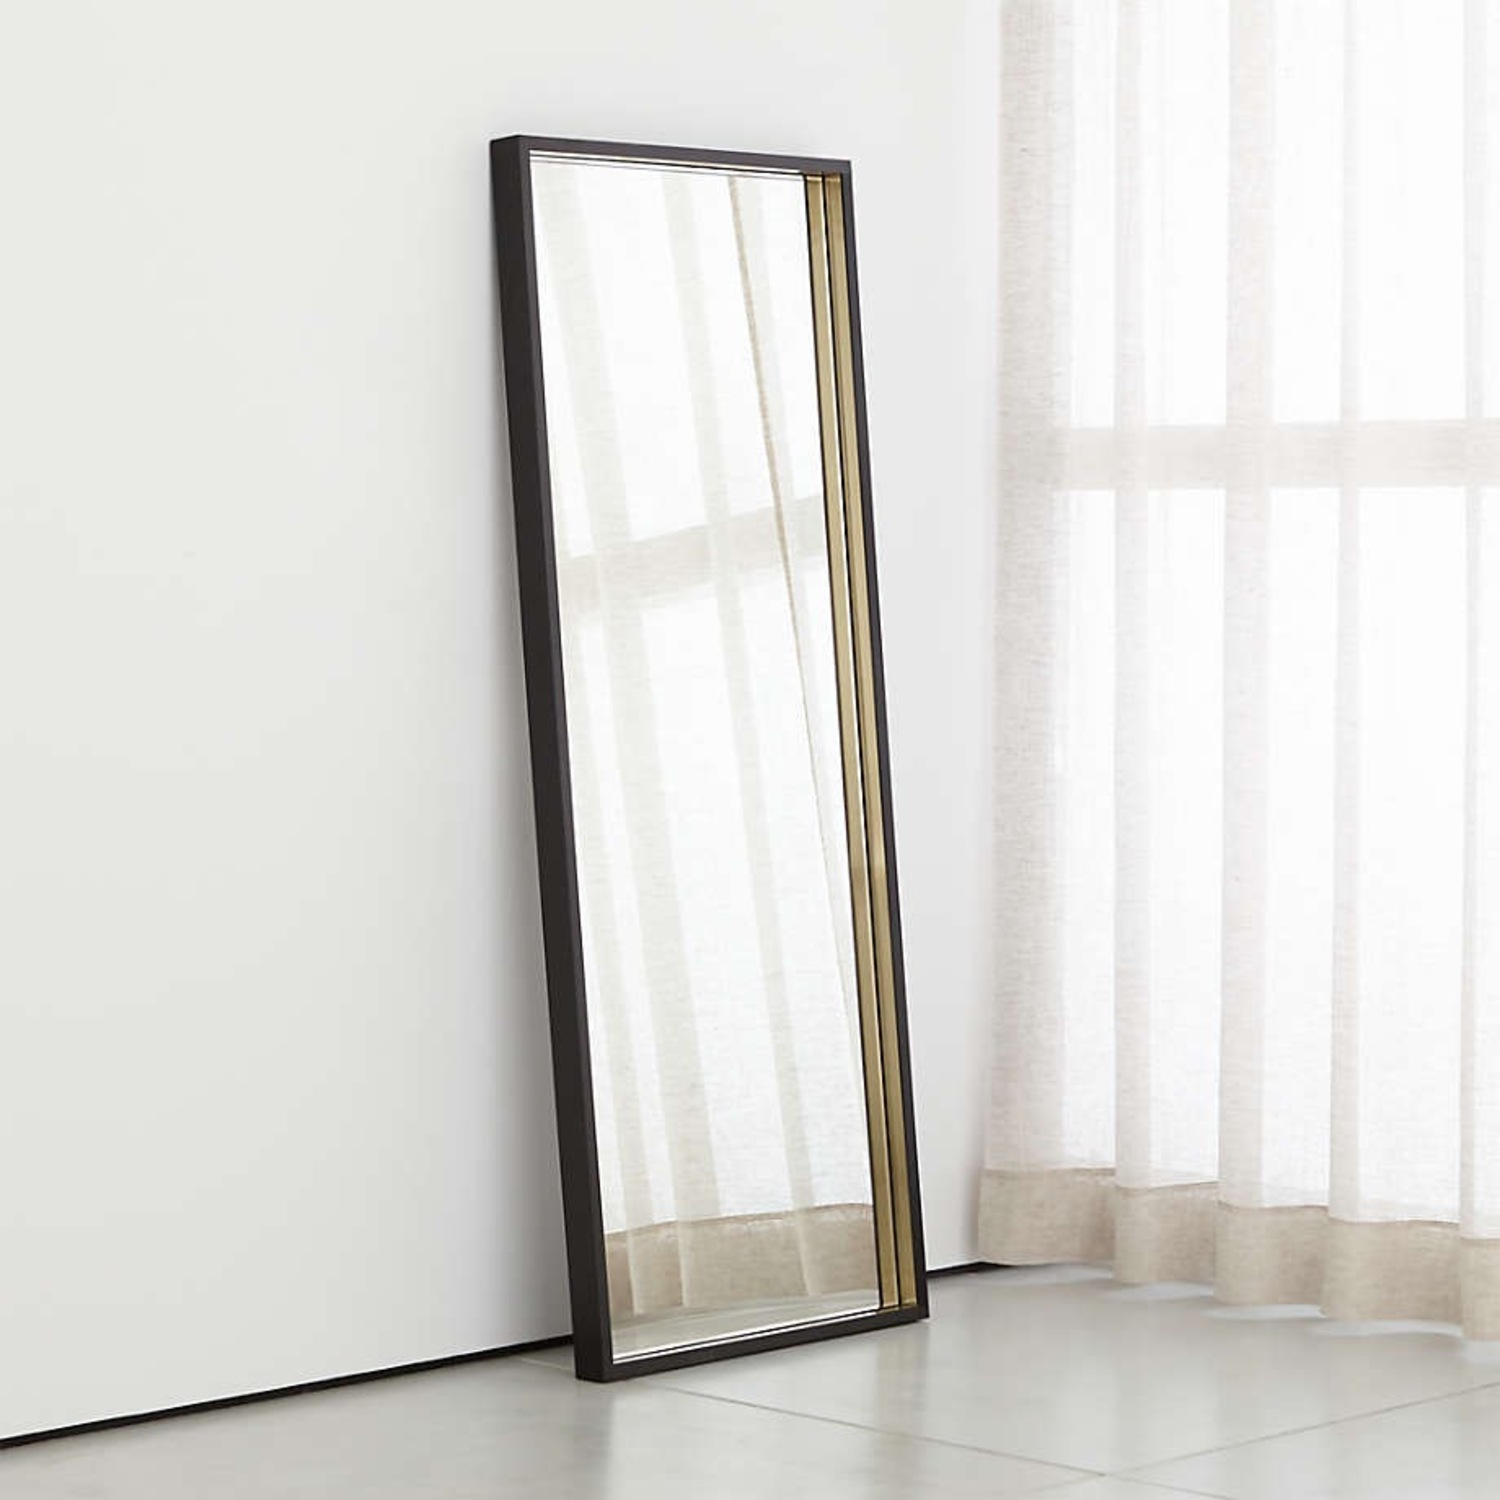 Crate & Barrel Liam Frame Floor Mirror with Brass Inlay - image-1